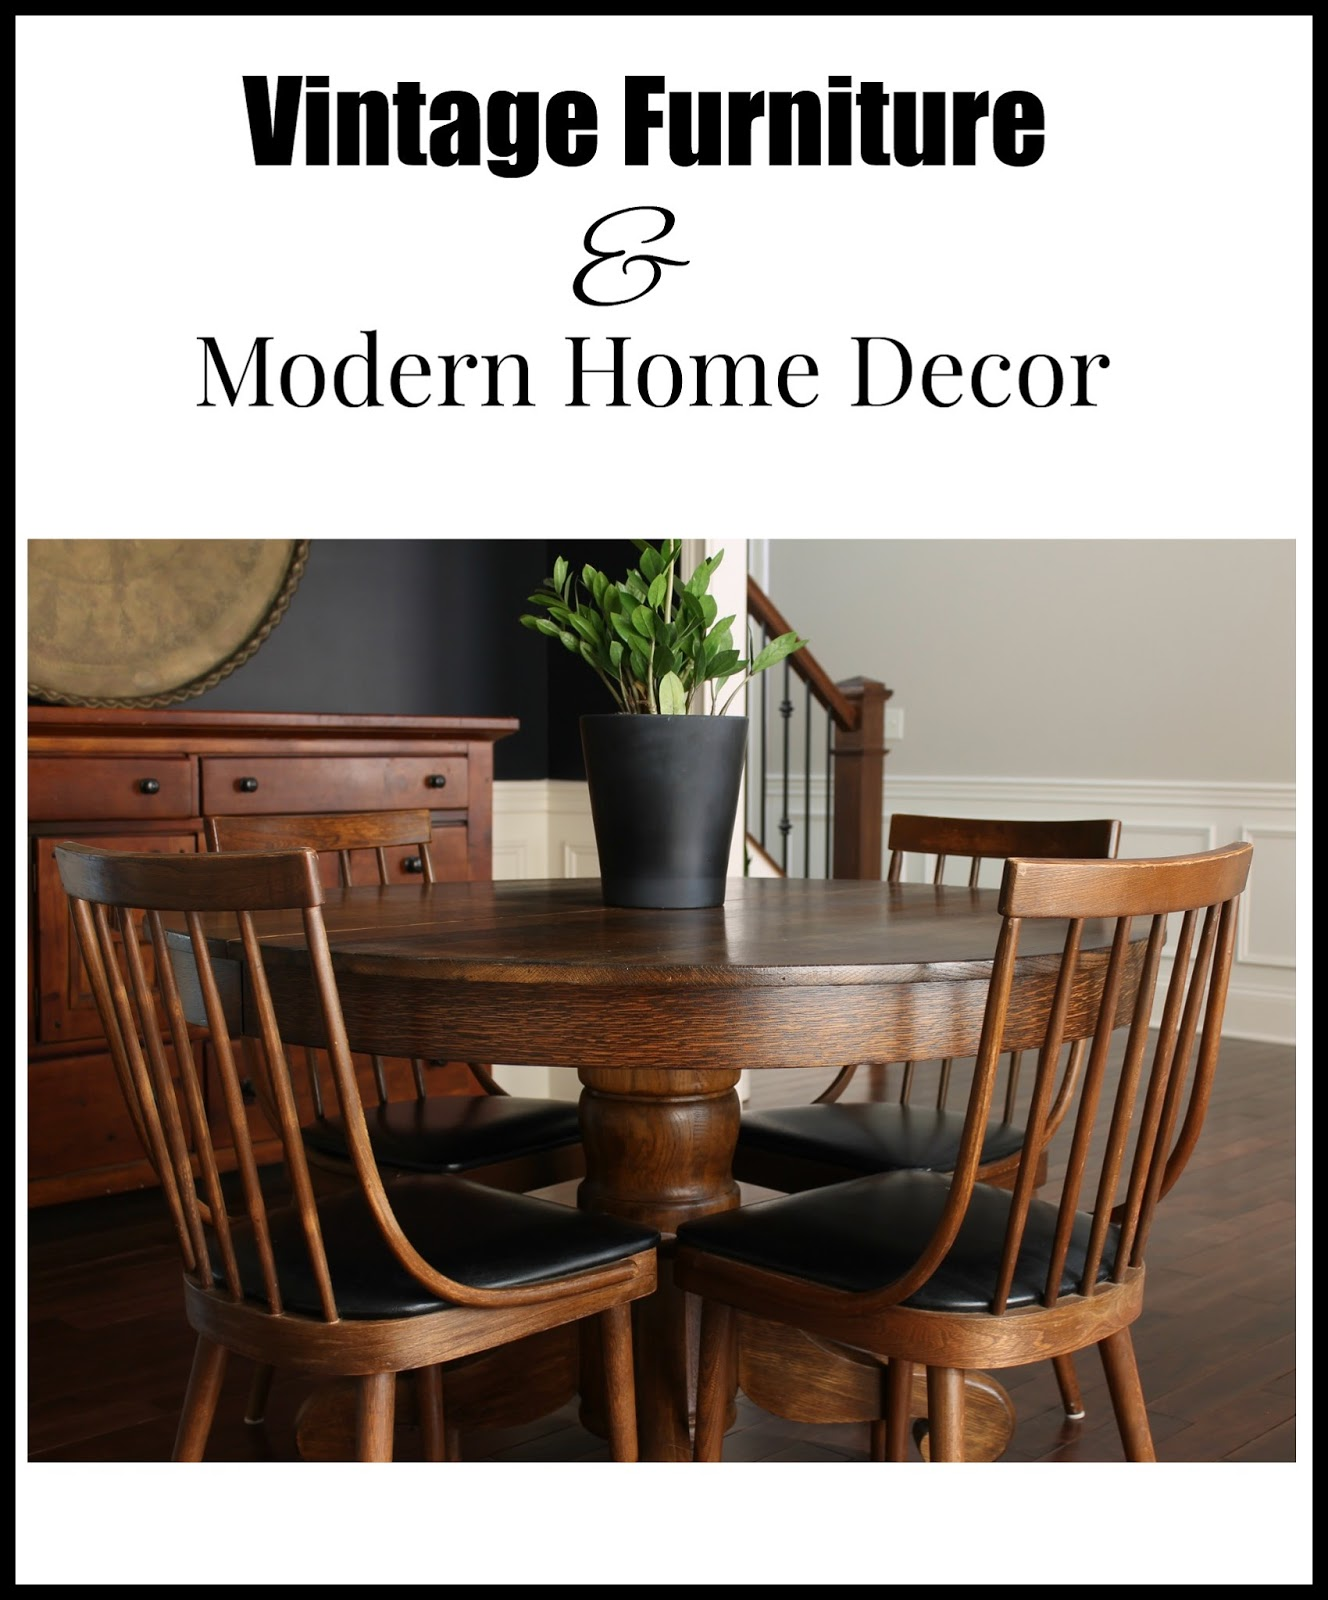 58 Water Street Vintage Furniture Modern Home Decor